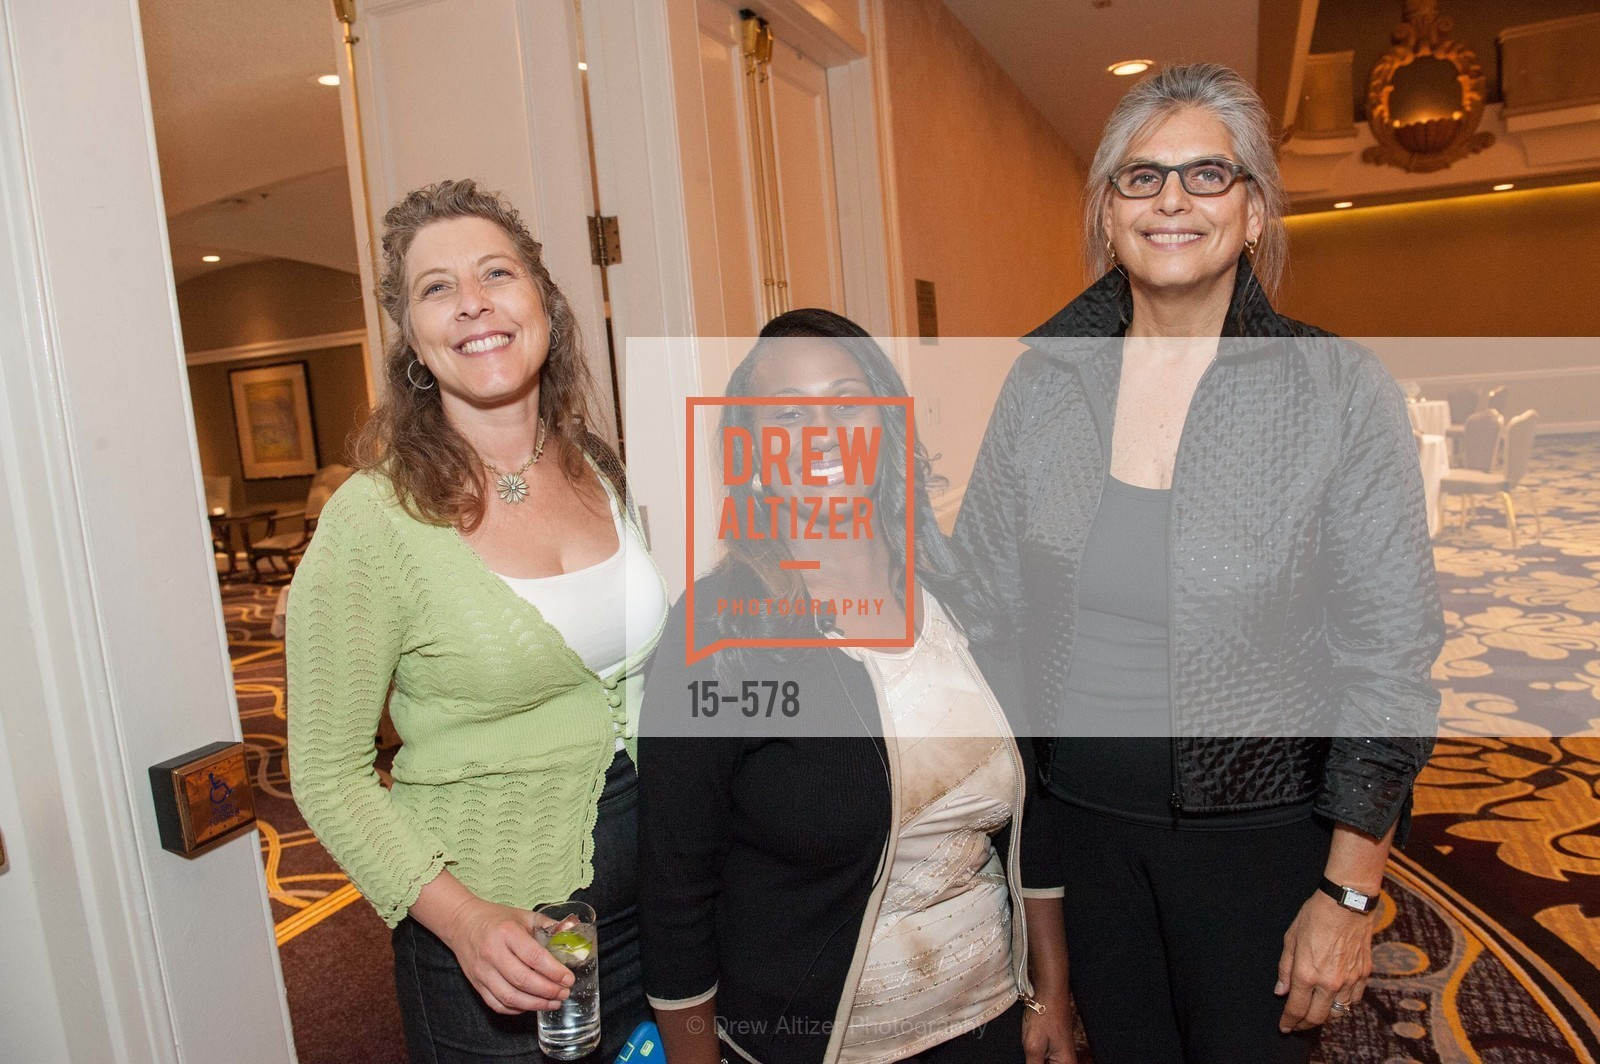 Jona Baum, Carla Roberts, Roberta Goodman, HOMELESS PRENATAL Annual Luncheon 2014, US, October 1st, 2014,Drew Altizer, Drew Altizer Photography, full-service agency, private events, San Francisco photographer, photographer california